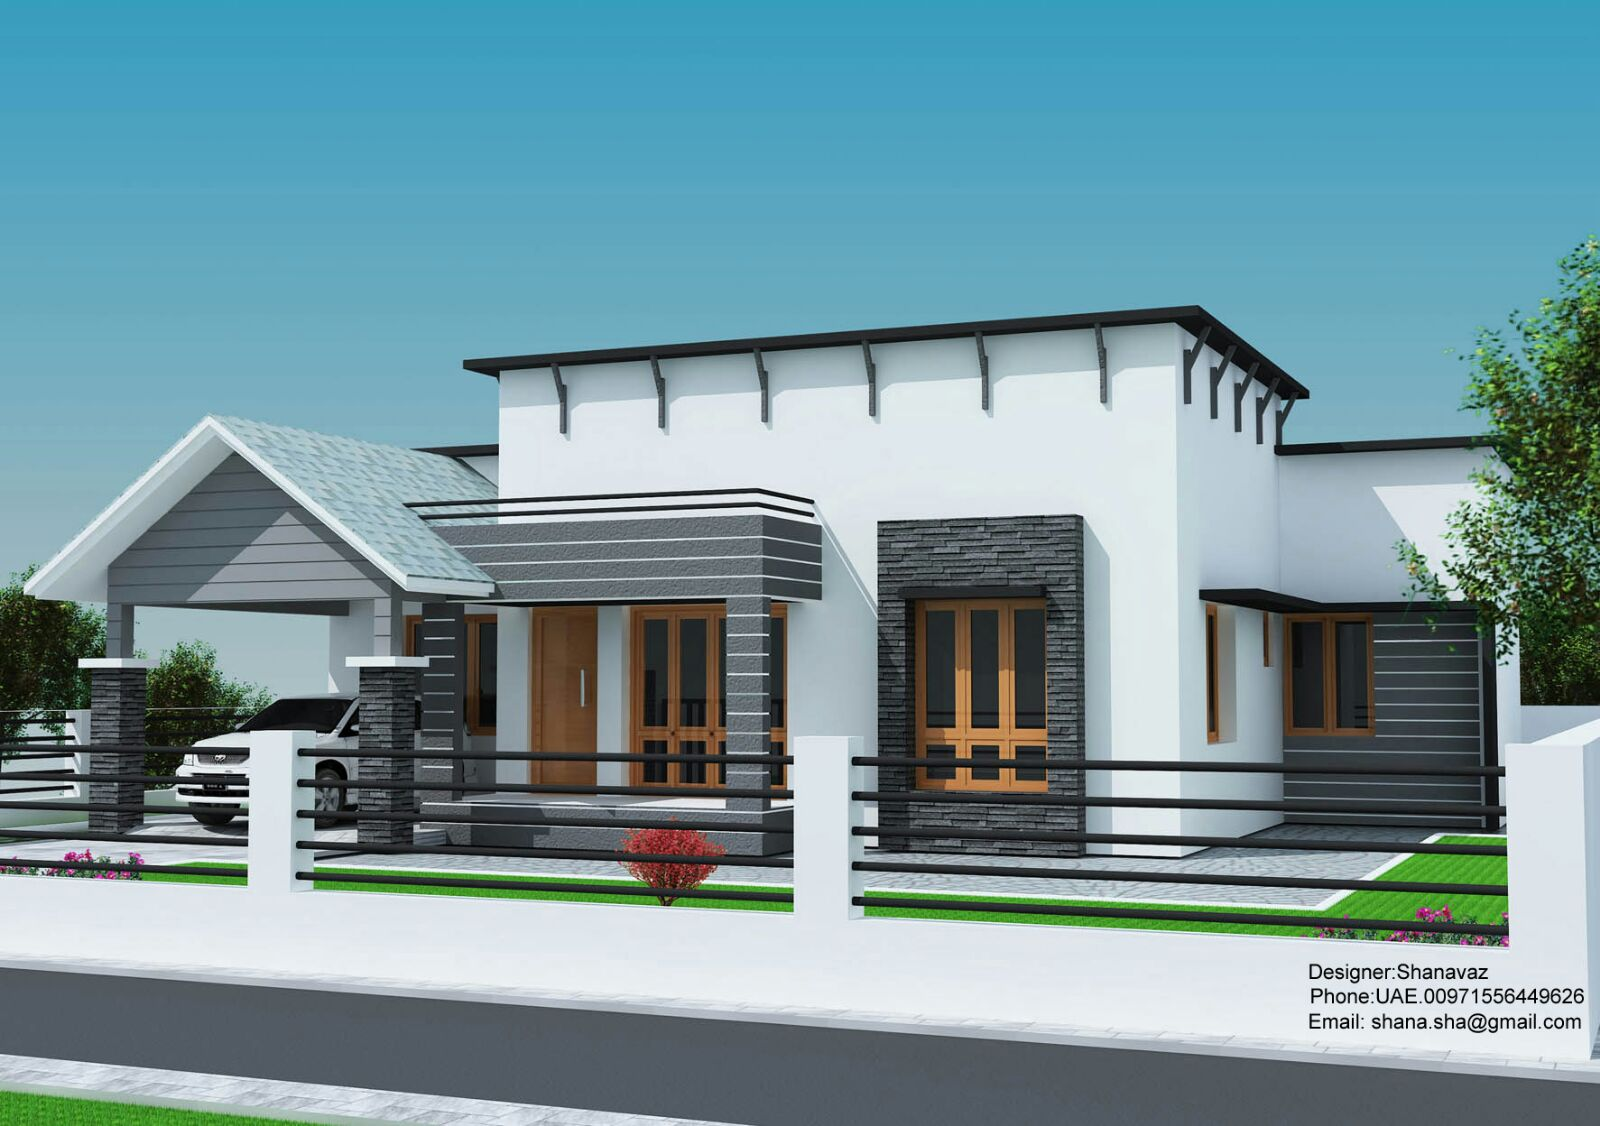 1300 sq ft single floor contemporary home design Modern house 1 floor